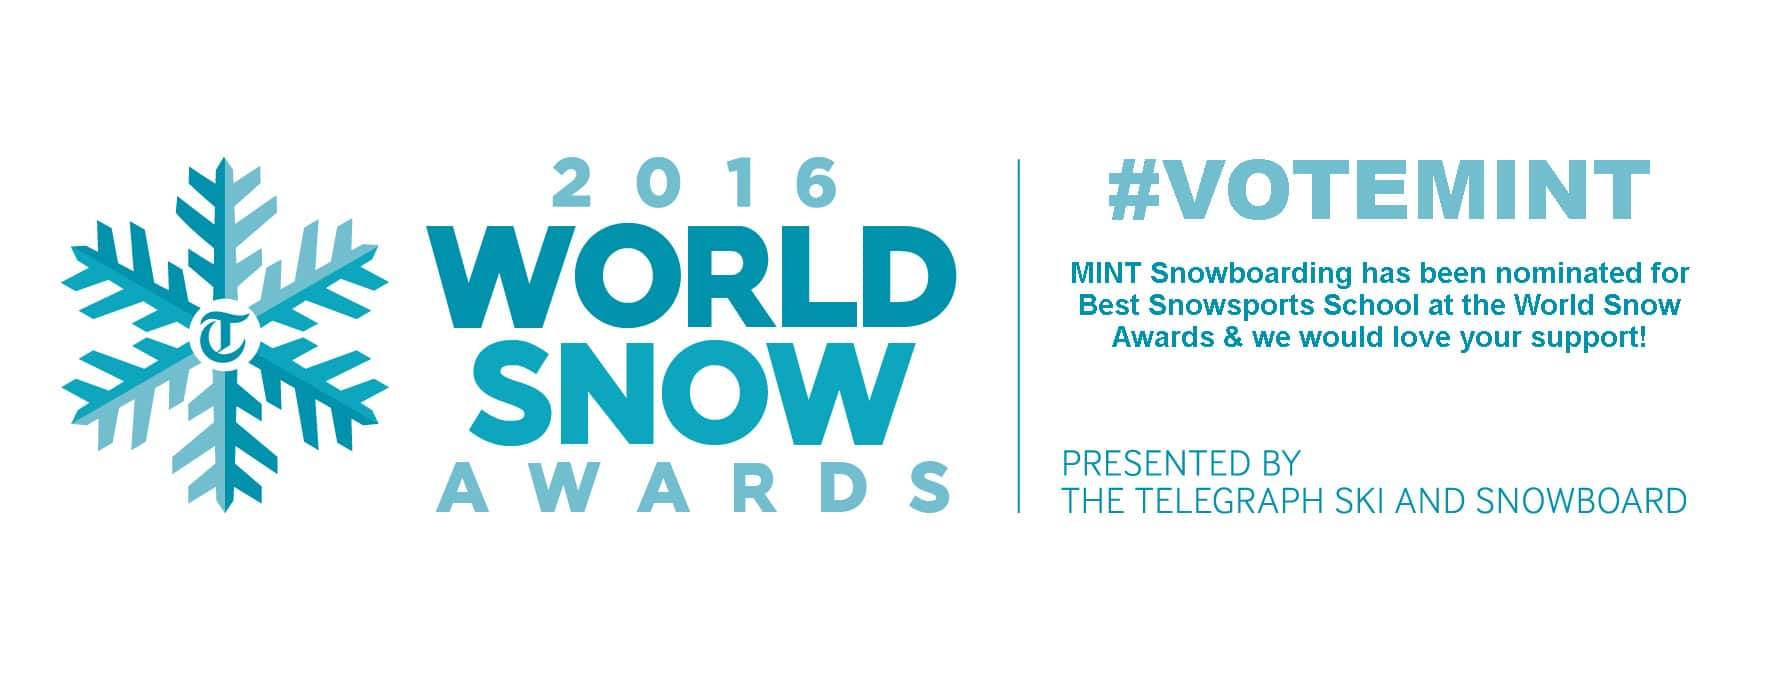 world snow awards logo 2016